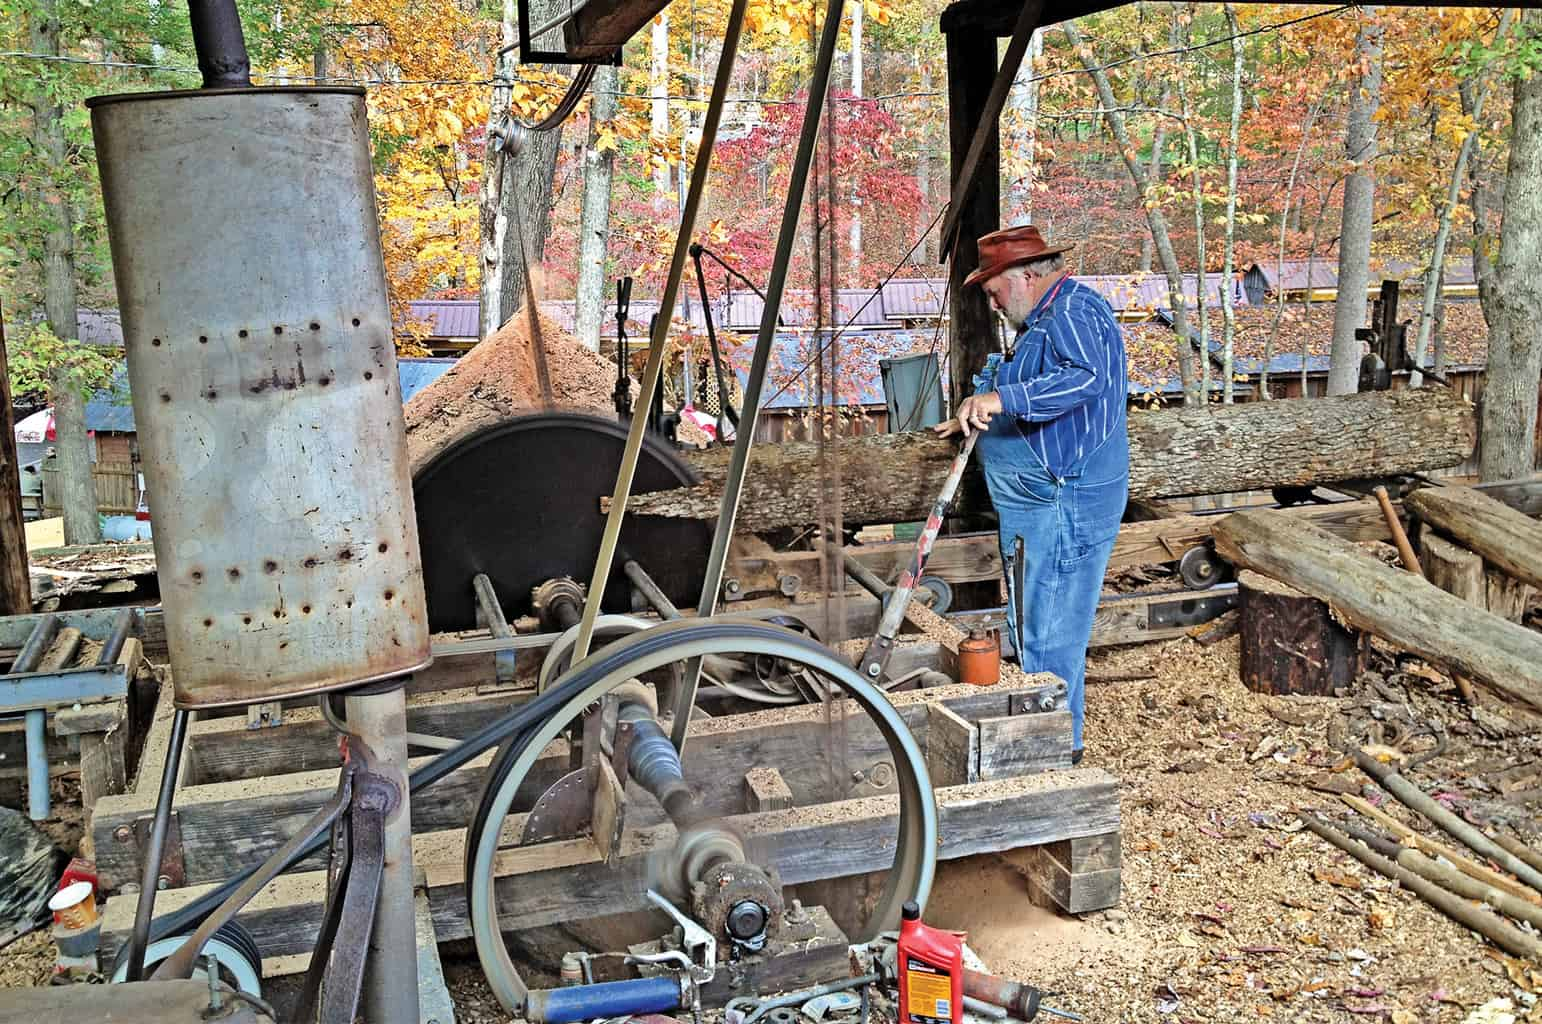 Georgia Mountain Parkway - Old-timey sawmill demonstration at the Georgia Mountain Fall Festival in Hiawassee, Georgia